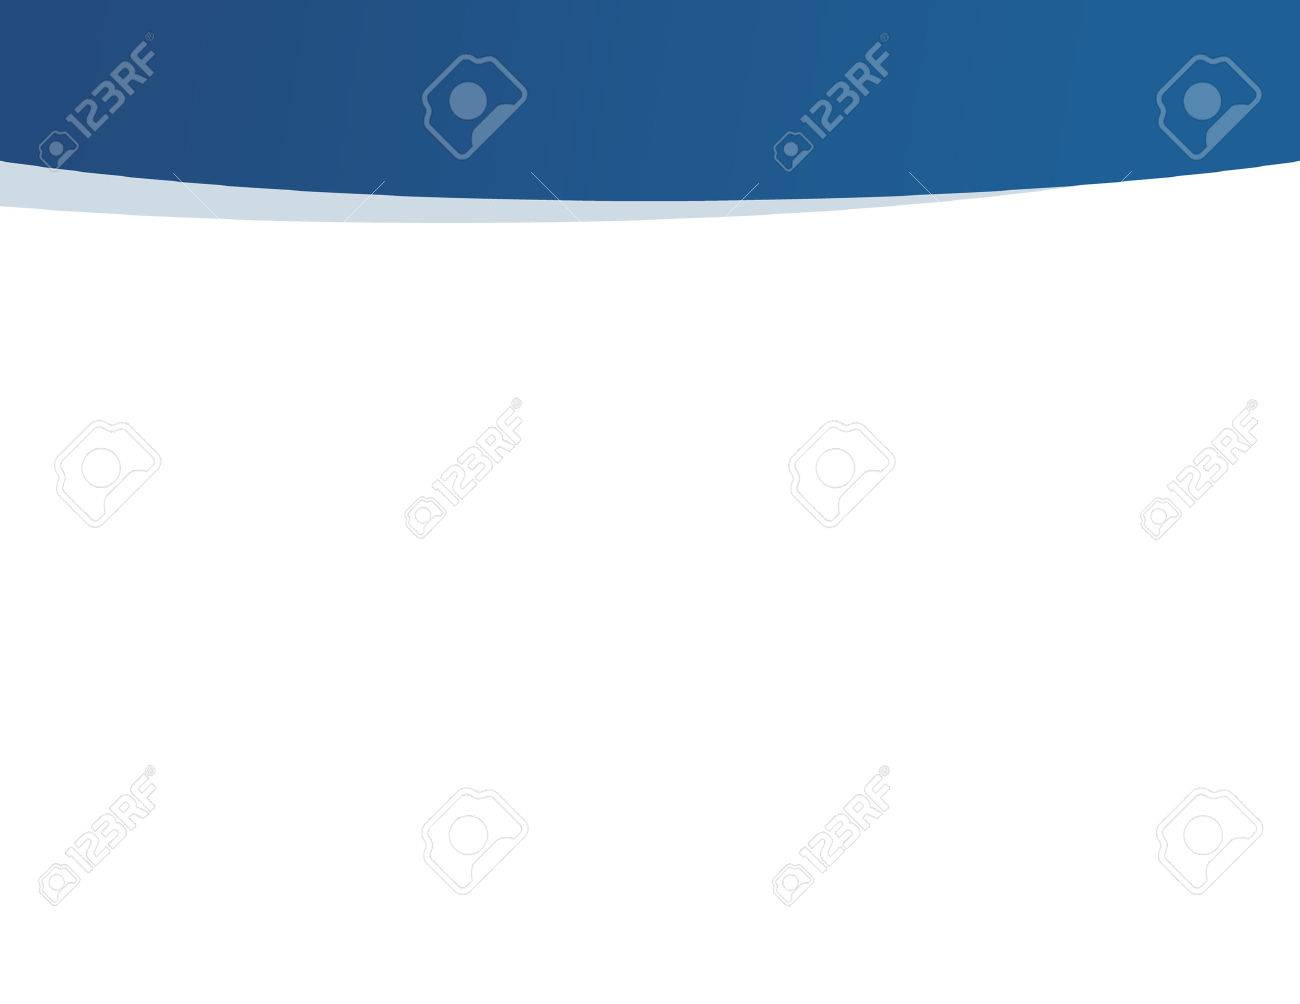 Blue and white professional business presentation background - 43894943